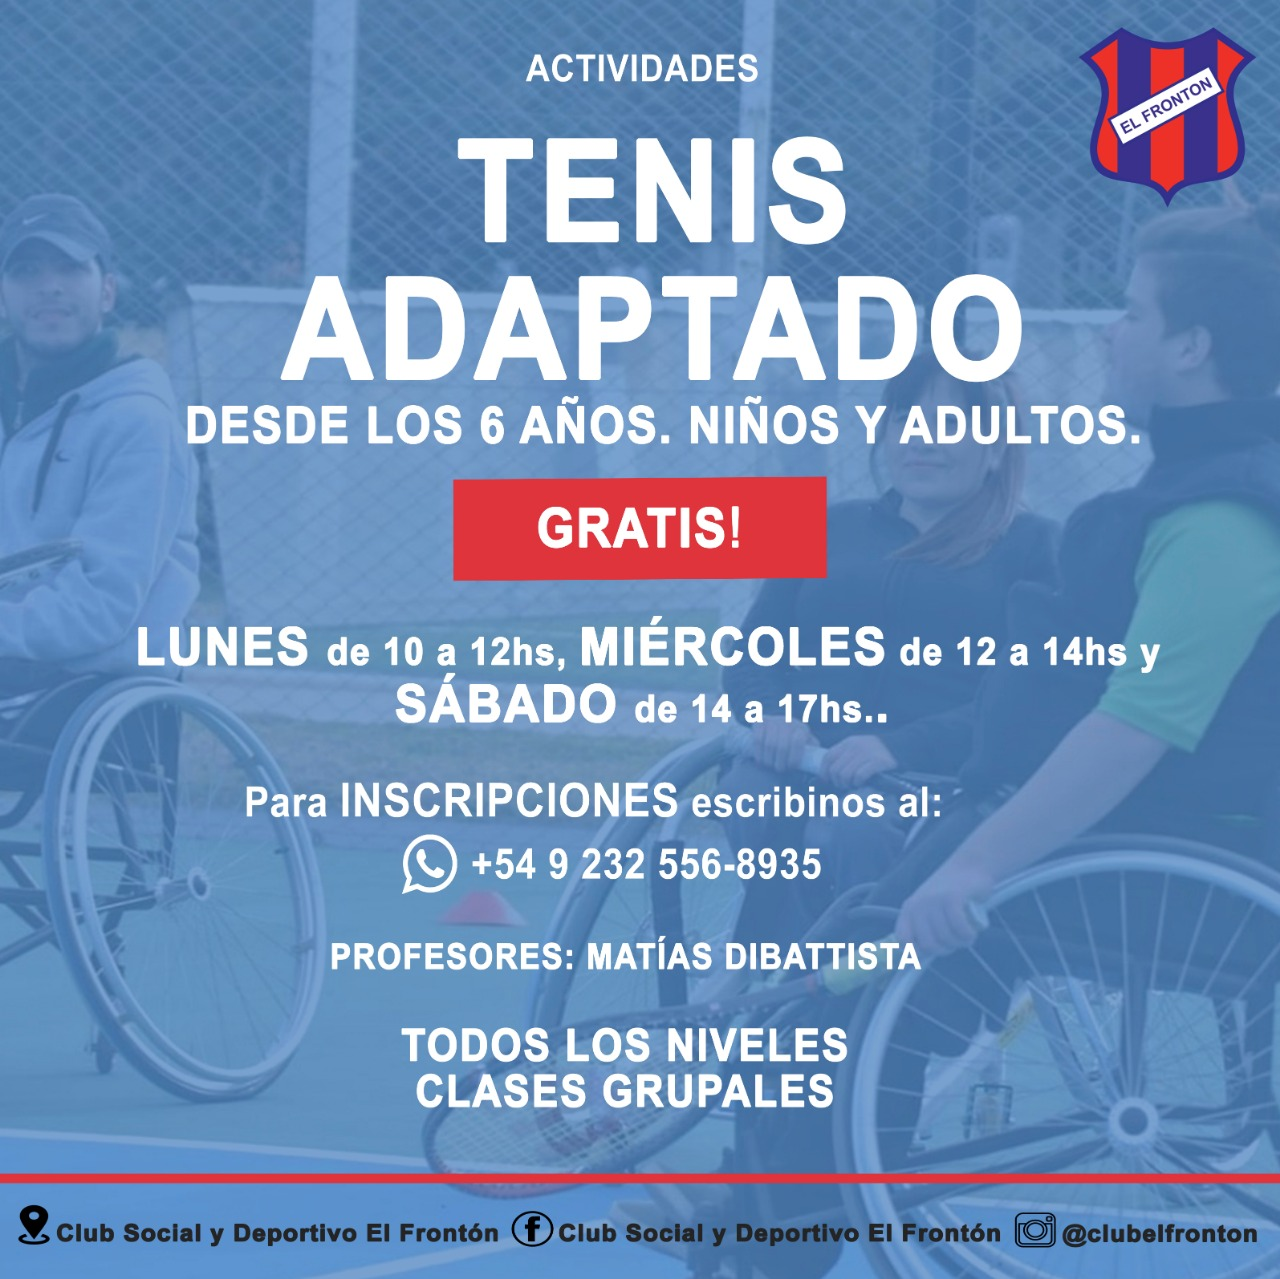 https://elfronton.club/wp-content/uploads/2019/09/tenis-adaptado-el-fronton.jpeg